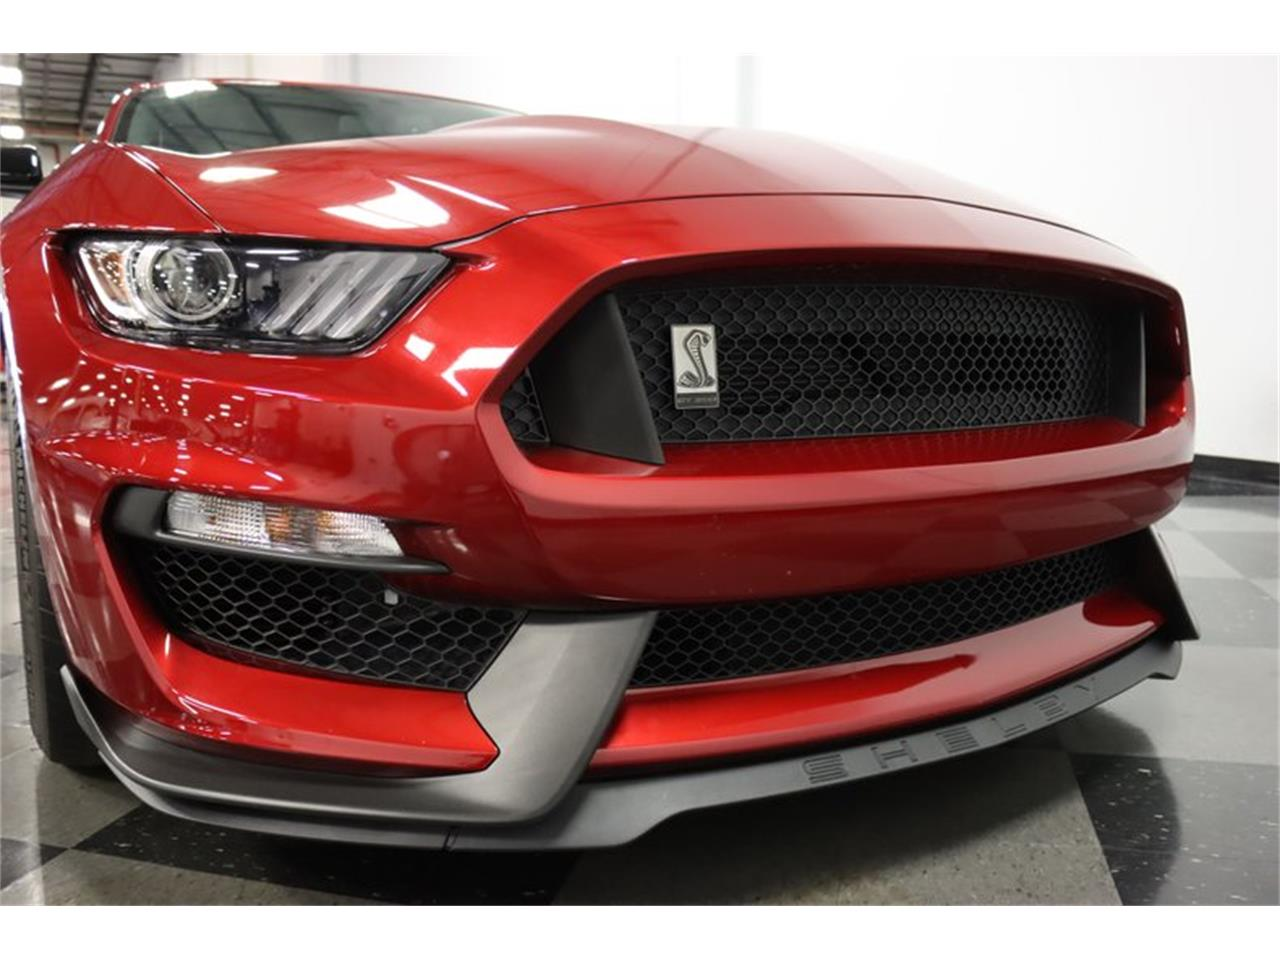 2019 Ford Mustang (CC-1389683) for sale in Ft Worth, Texas